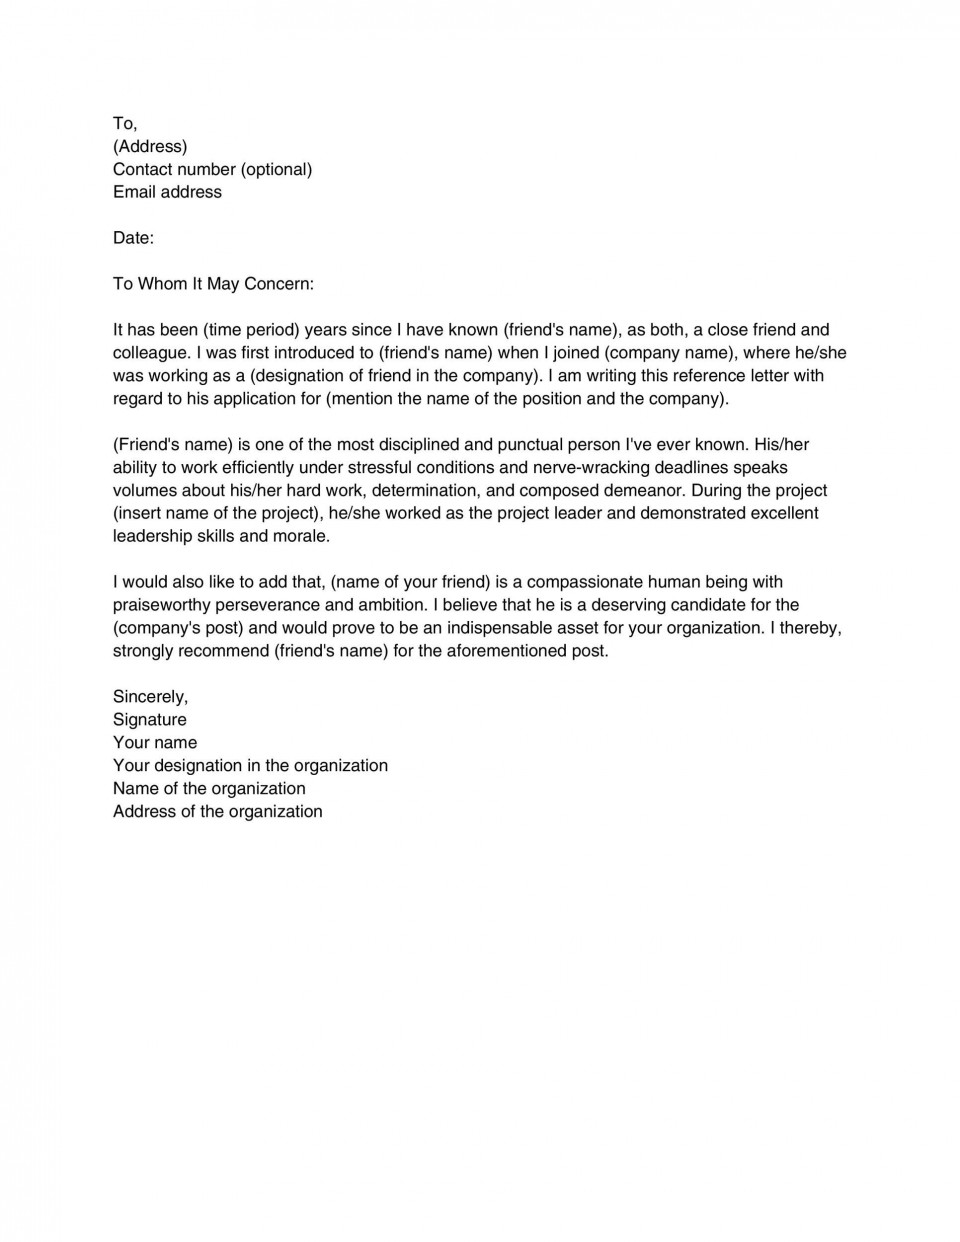 004 Unusual Free Reference Letter Template From Employer Image  For Employment Word960